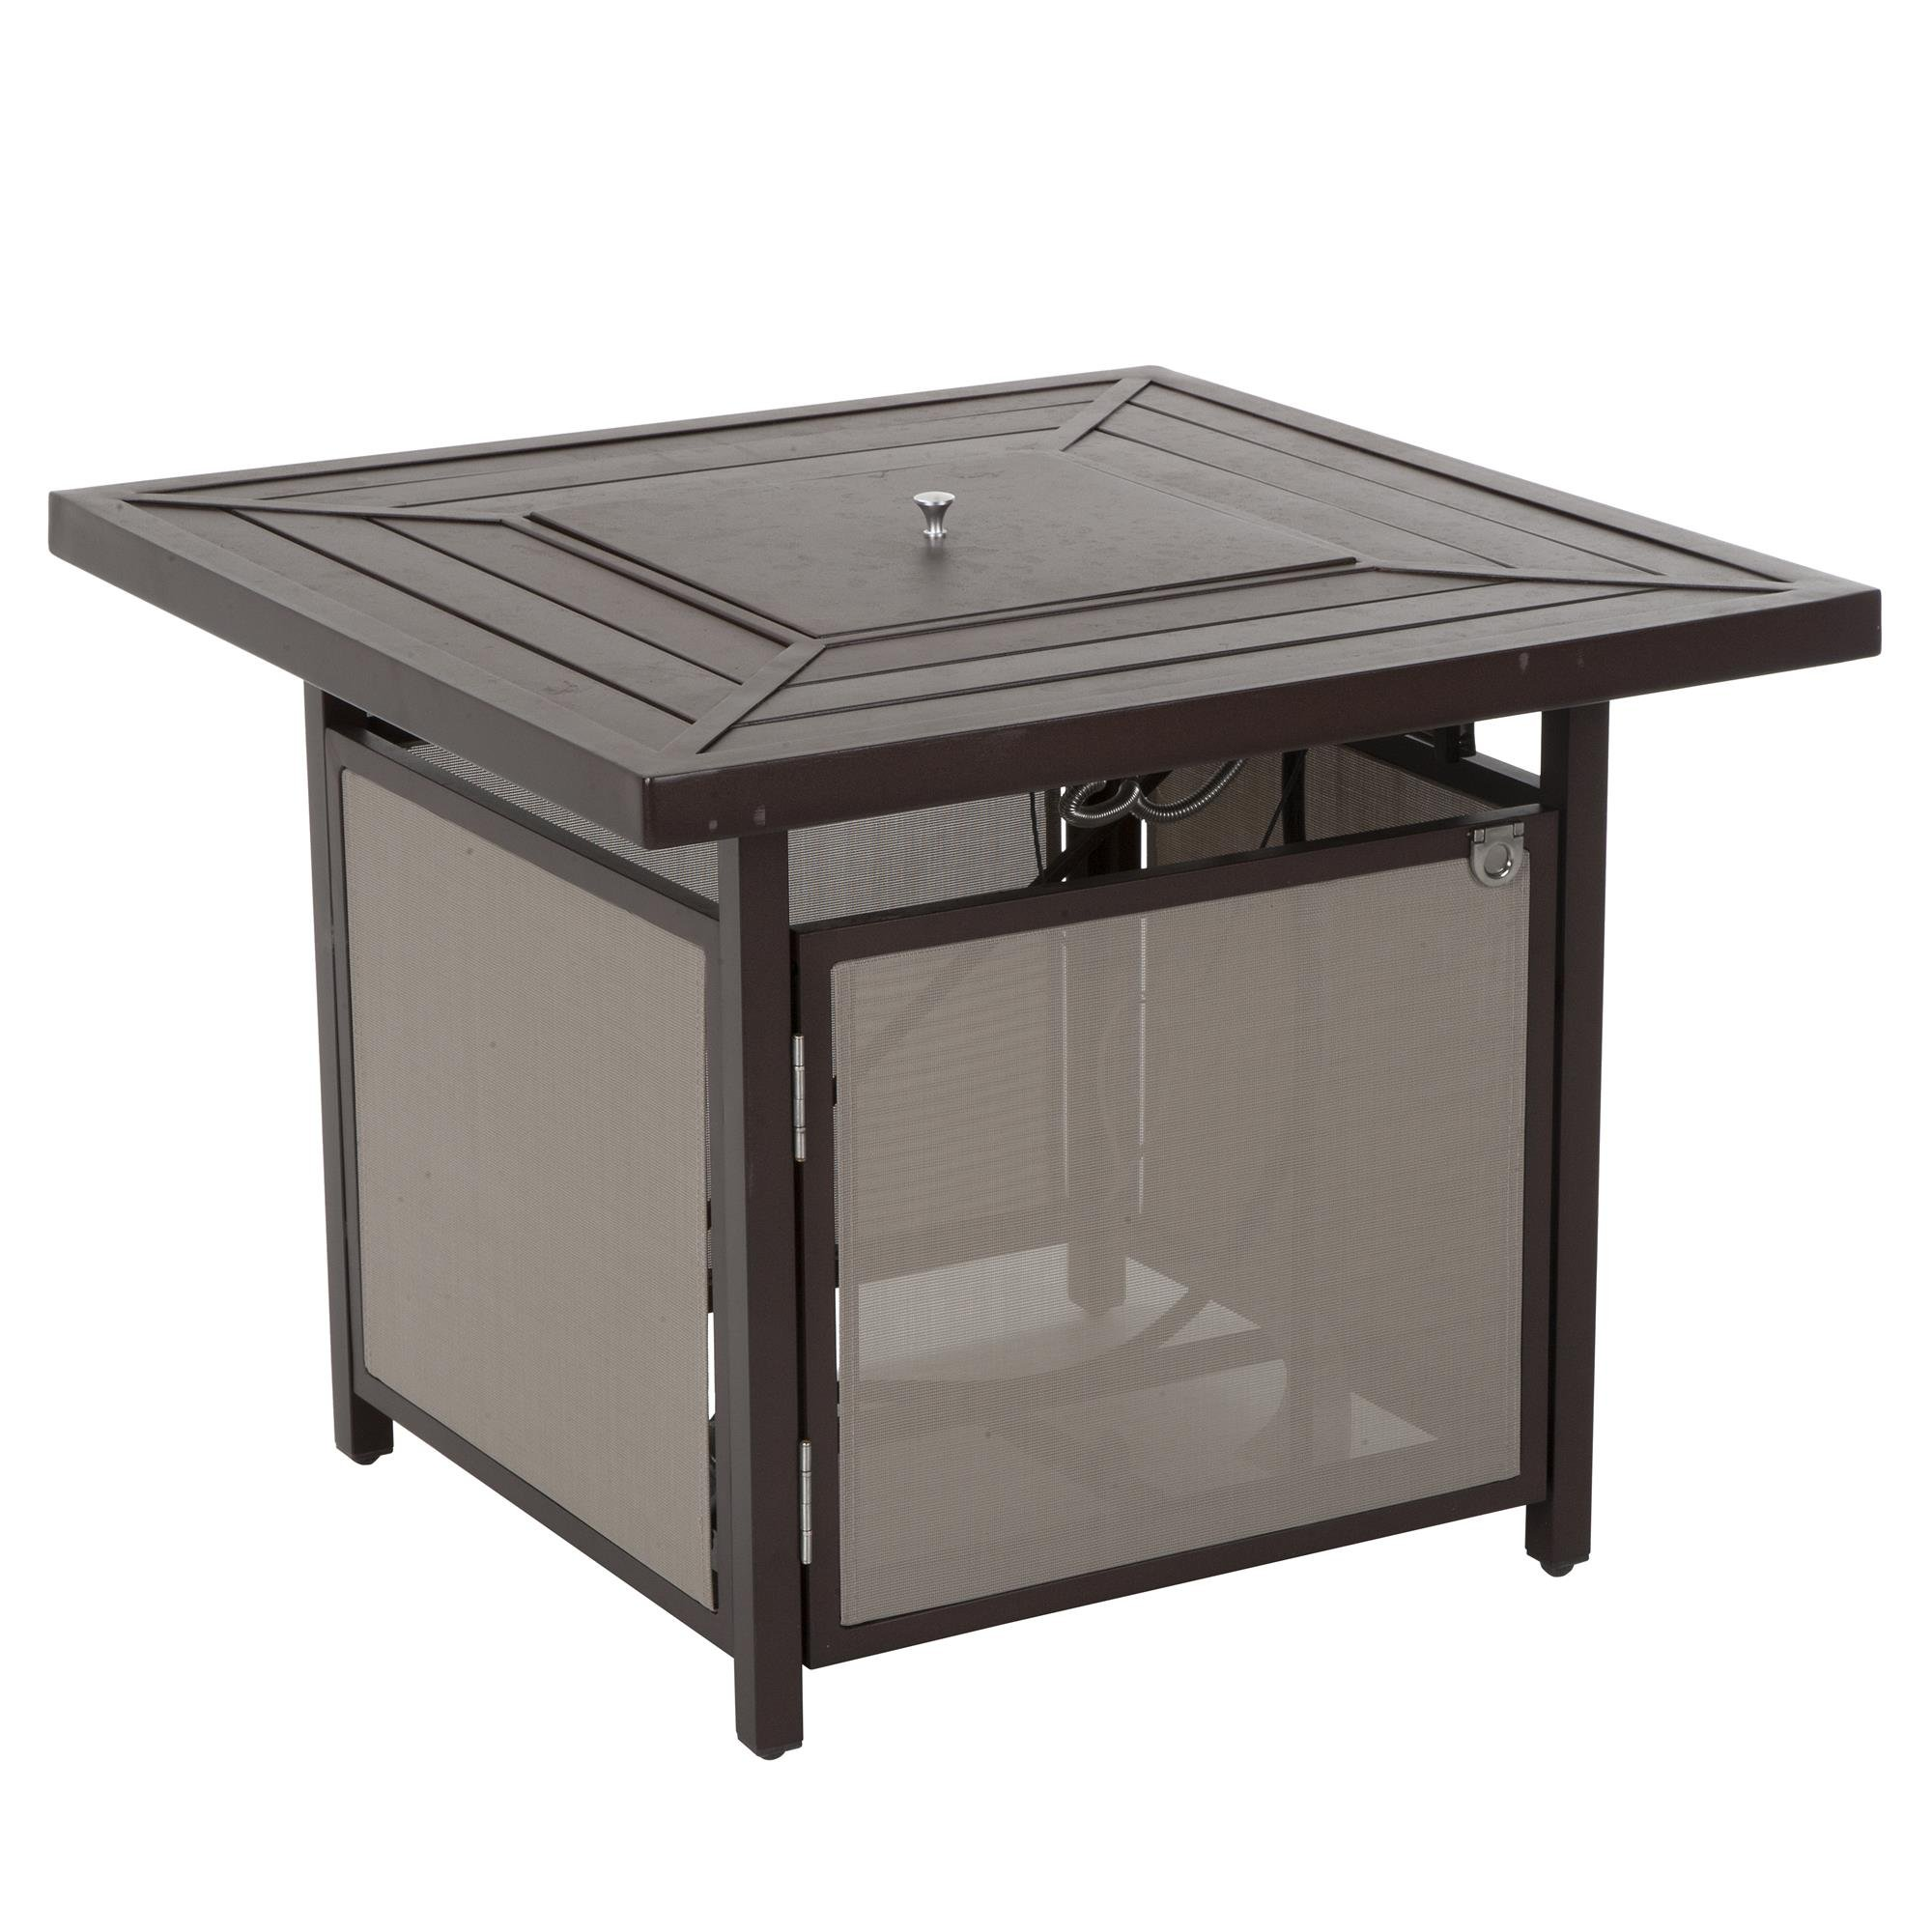 COSCO 88651SBTE Outdoor Living Stone Lake Patio Propane Fire Pit Table, Brown by Cosco Outdoor Living